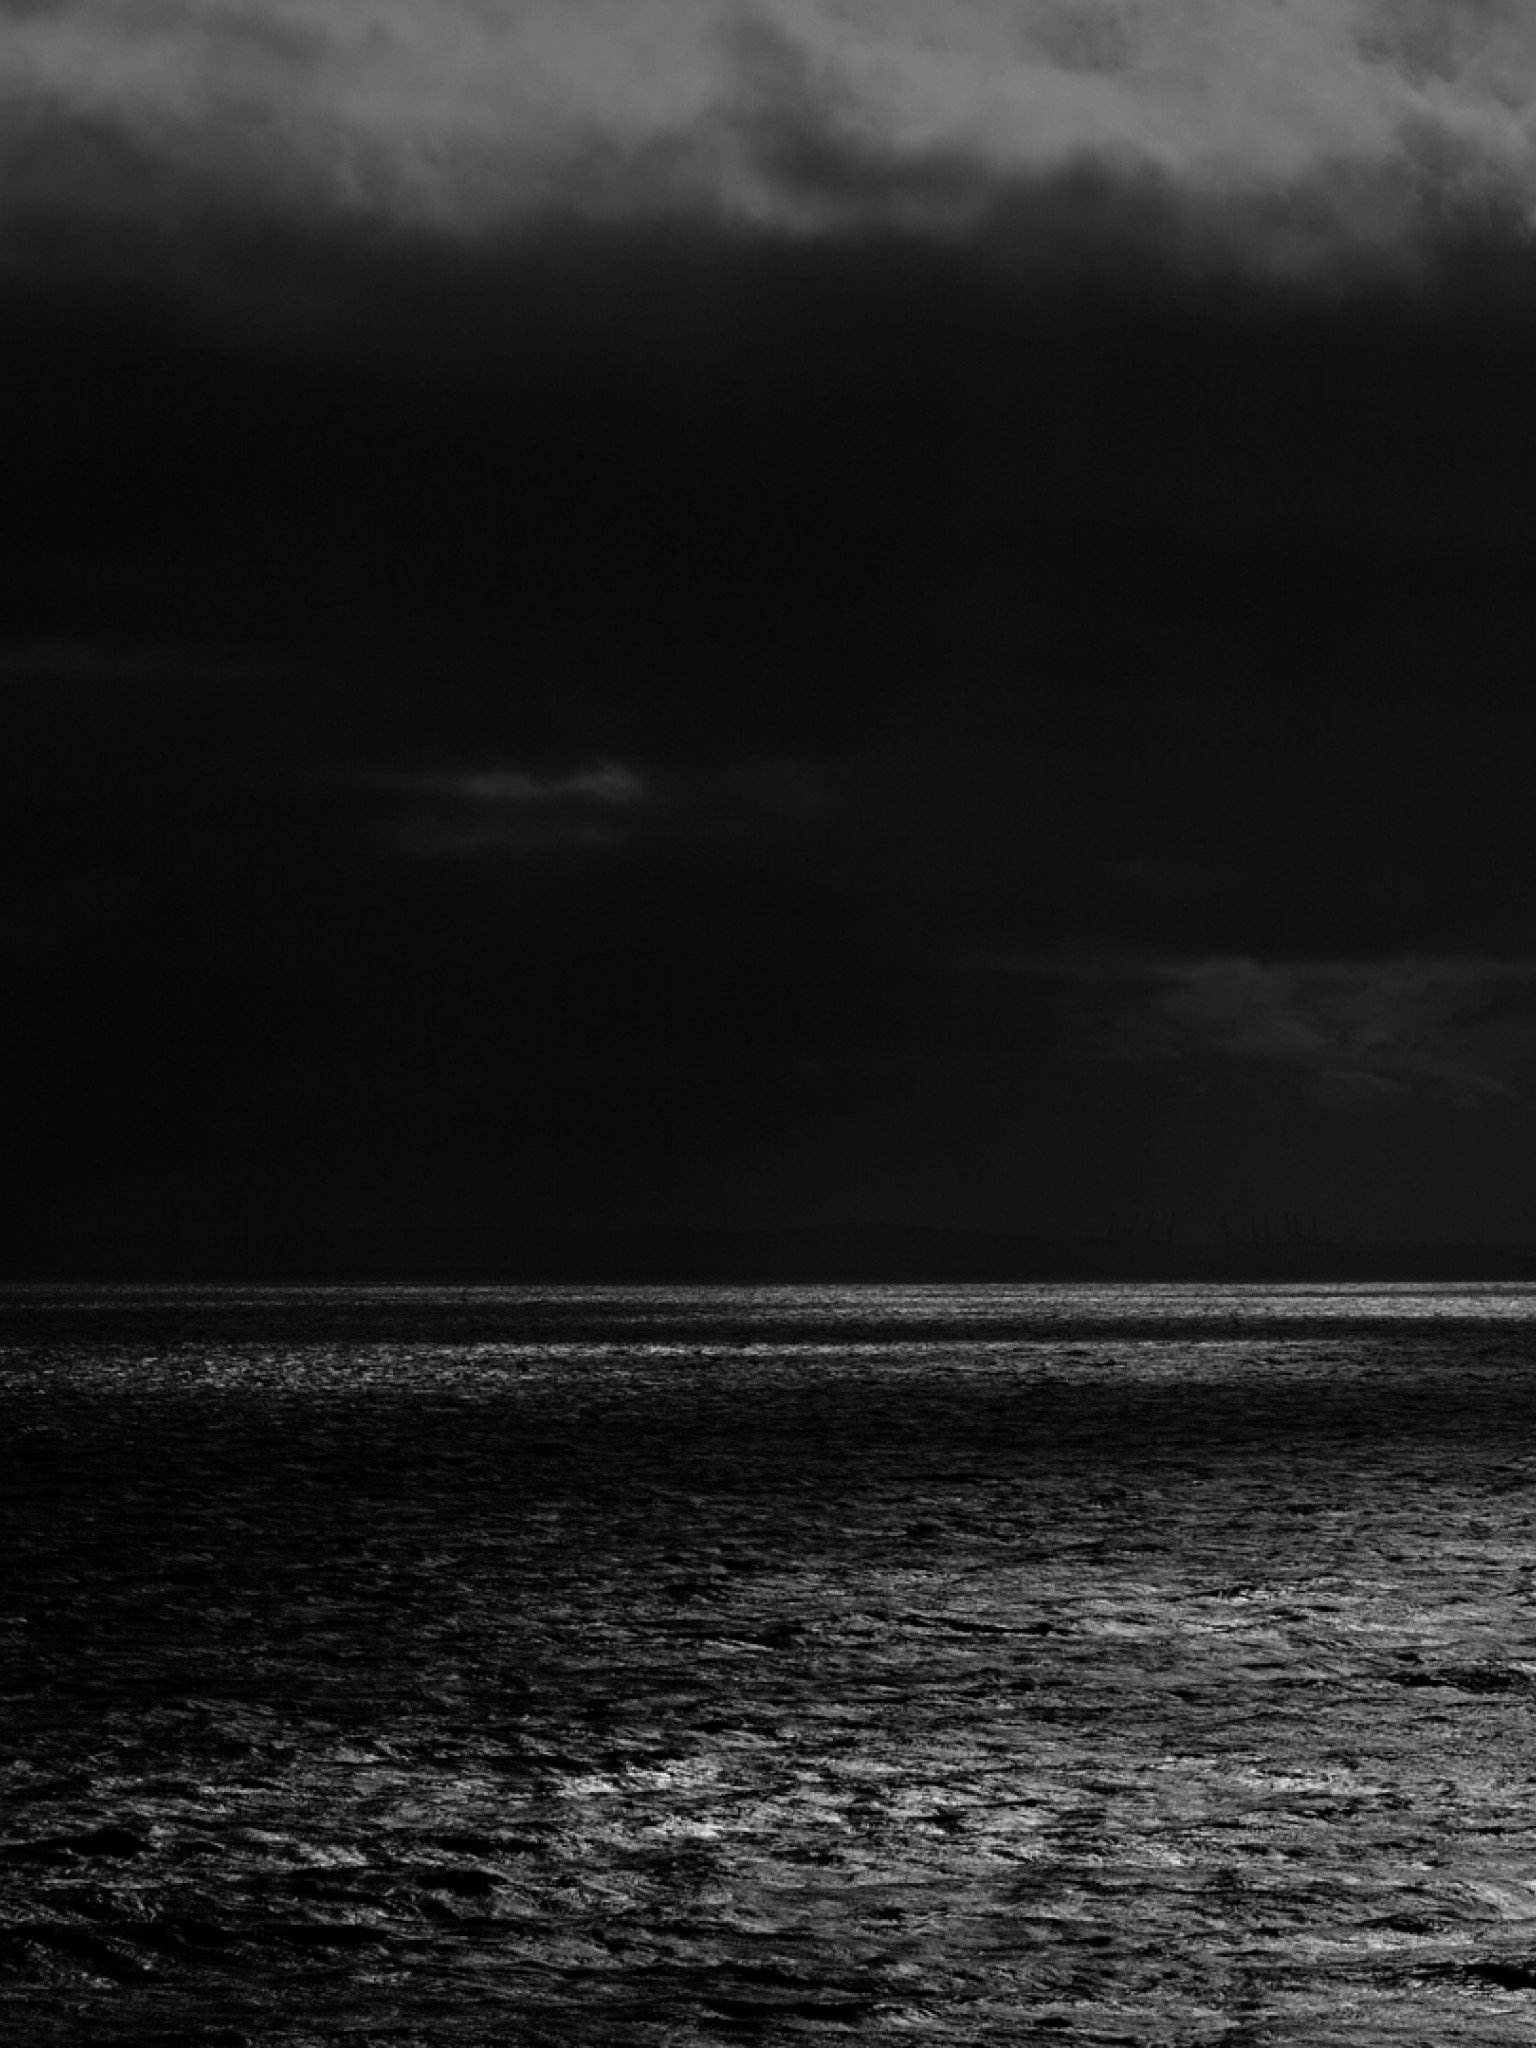 Dark Sea Horizon Hd Wallpaper Retina Ipad Hd Wallpaper Wallpapers Net